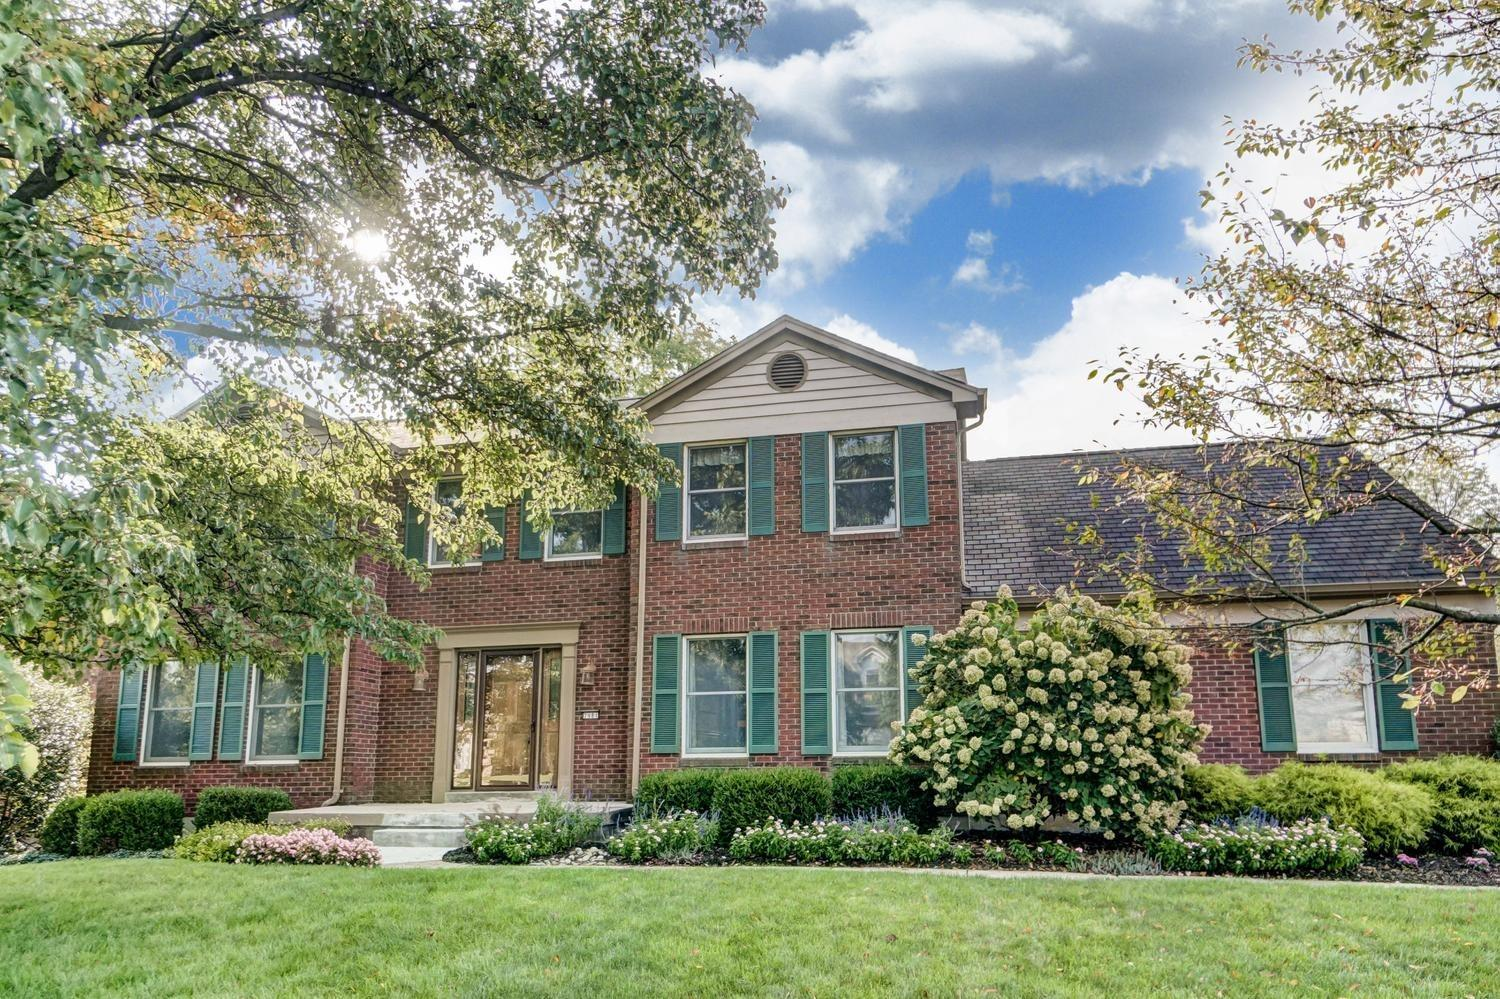 Property for sale at 7981 Jasmine Trail, West Chester,  OH 45241